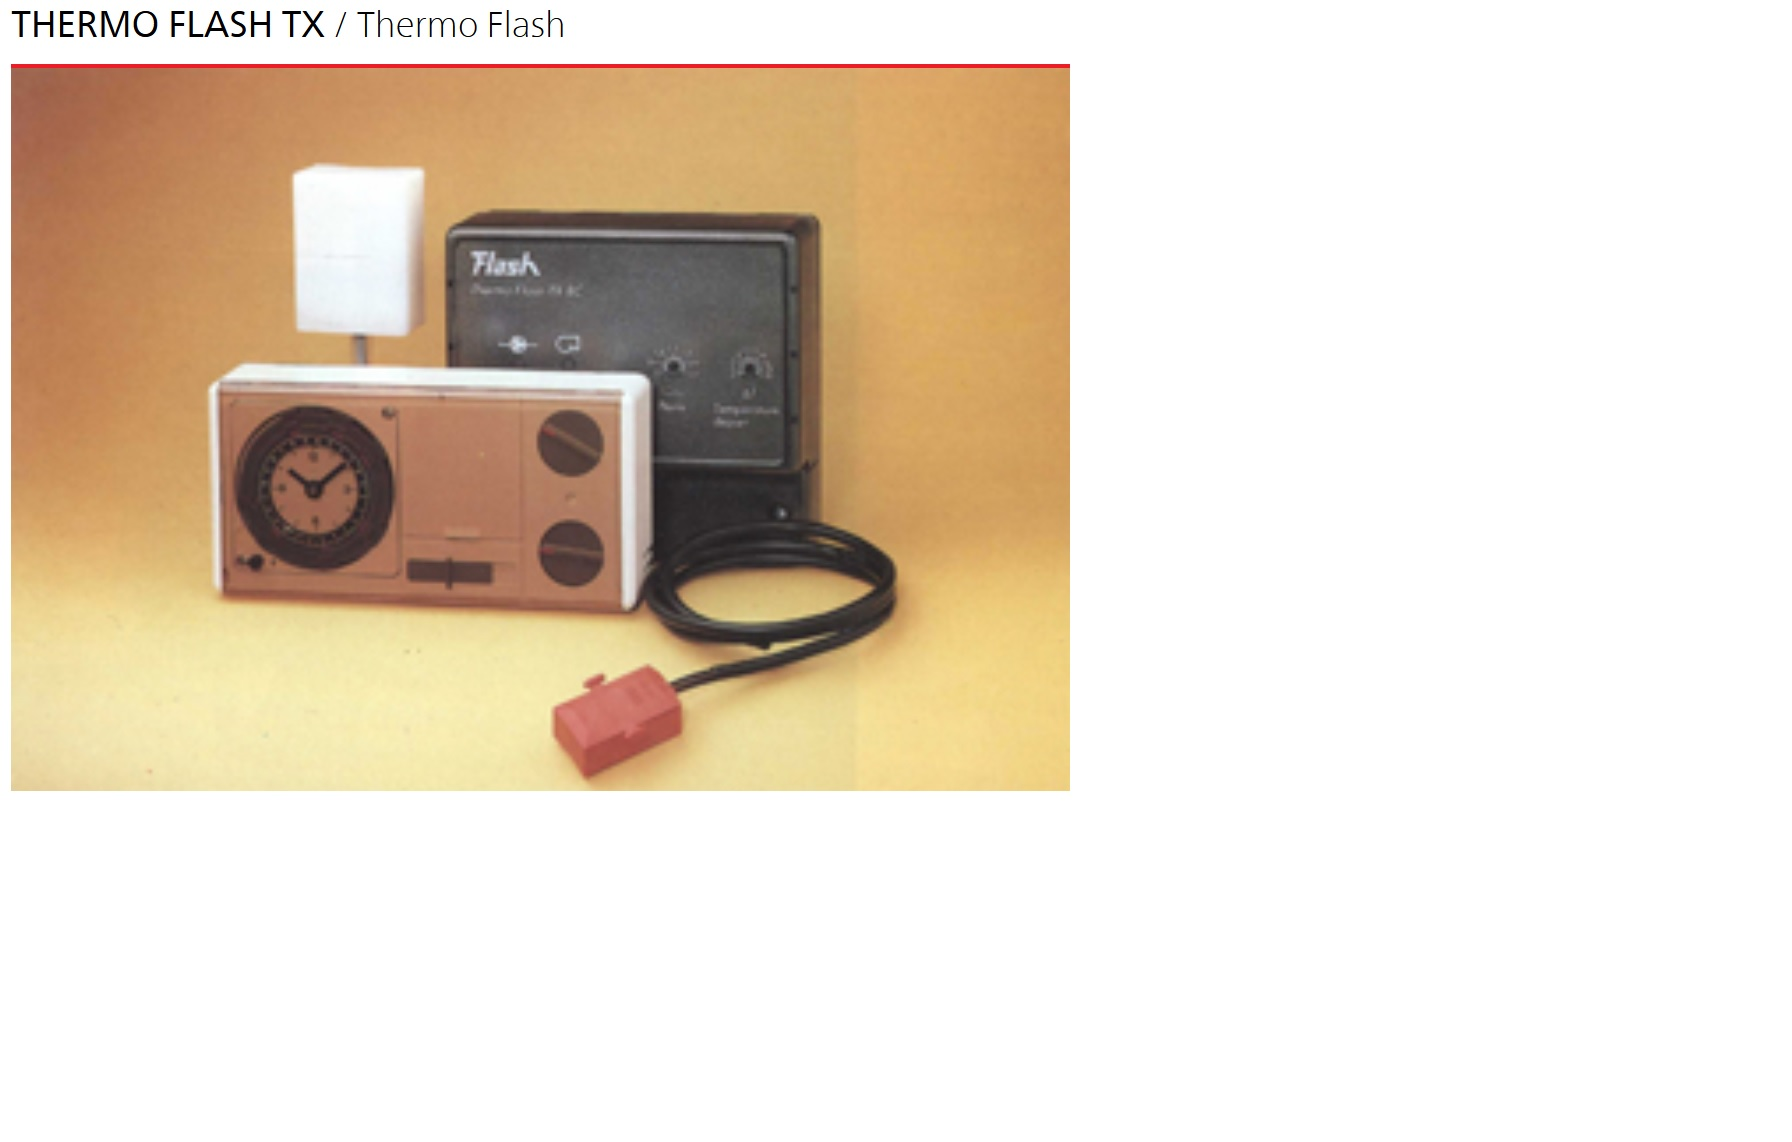 Thermo_Flash_TX_Complet.jpg, 131.43 kb, 1792 x 1142